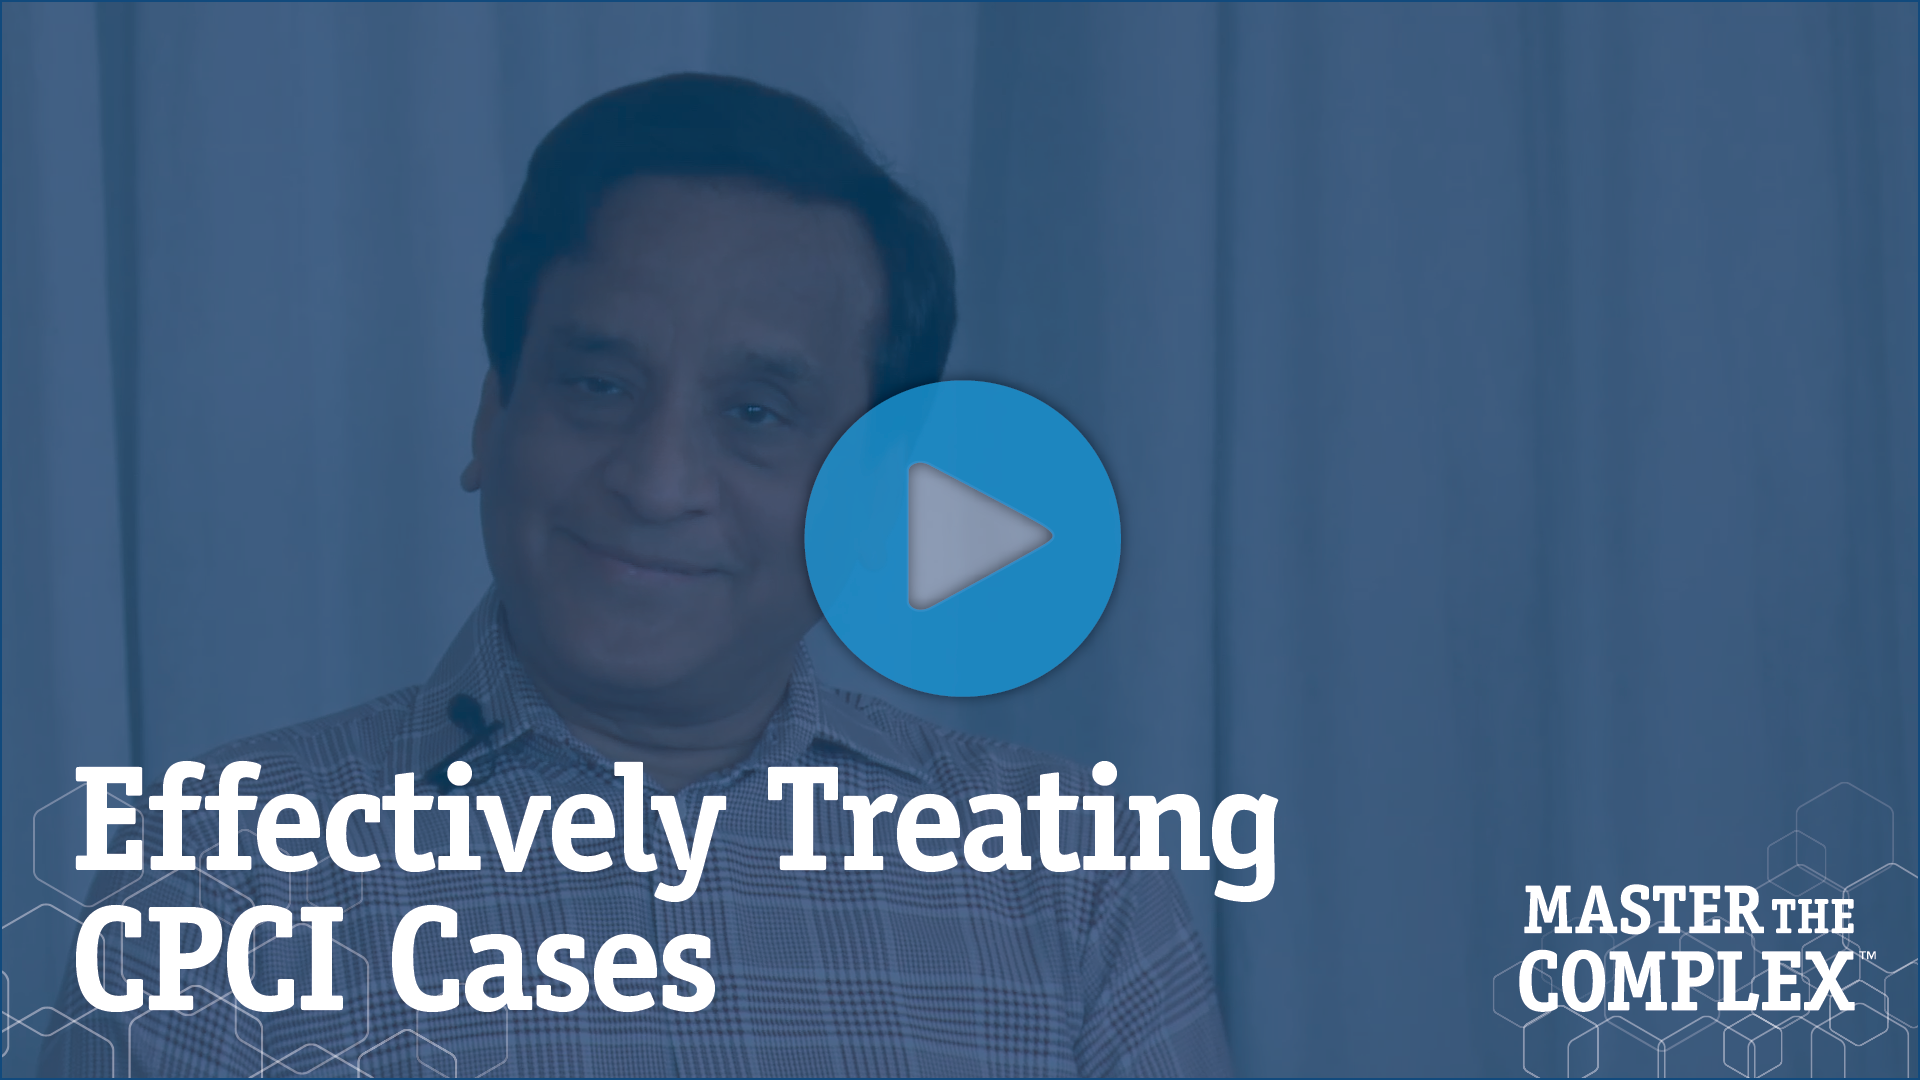 Effectively Treating CPCI Cases: What do you believe are the best ways for physicians to gain expertise at effectively treating Complex PCI cases? Listen to what the experts have to say.